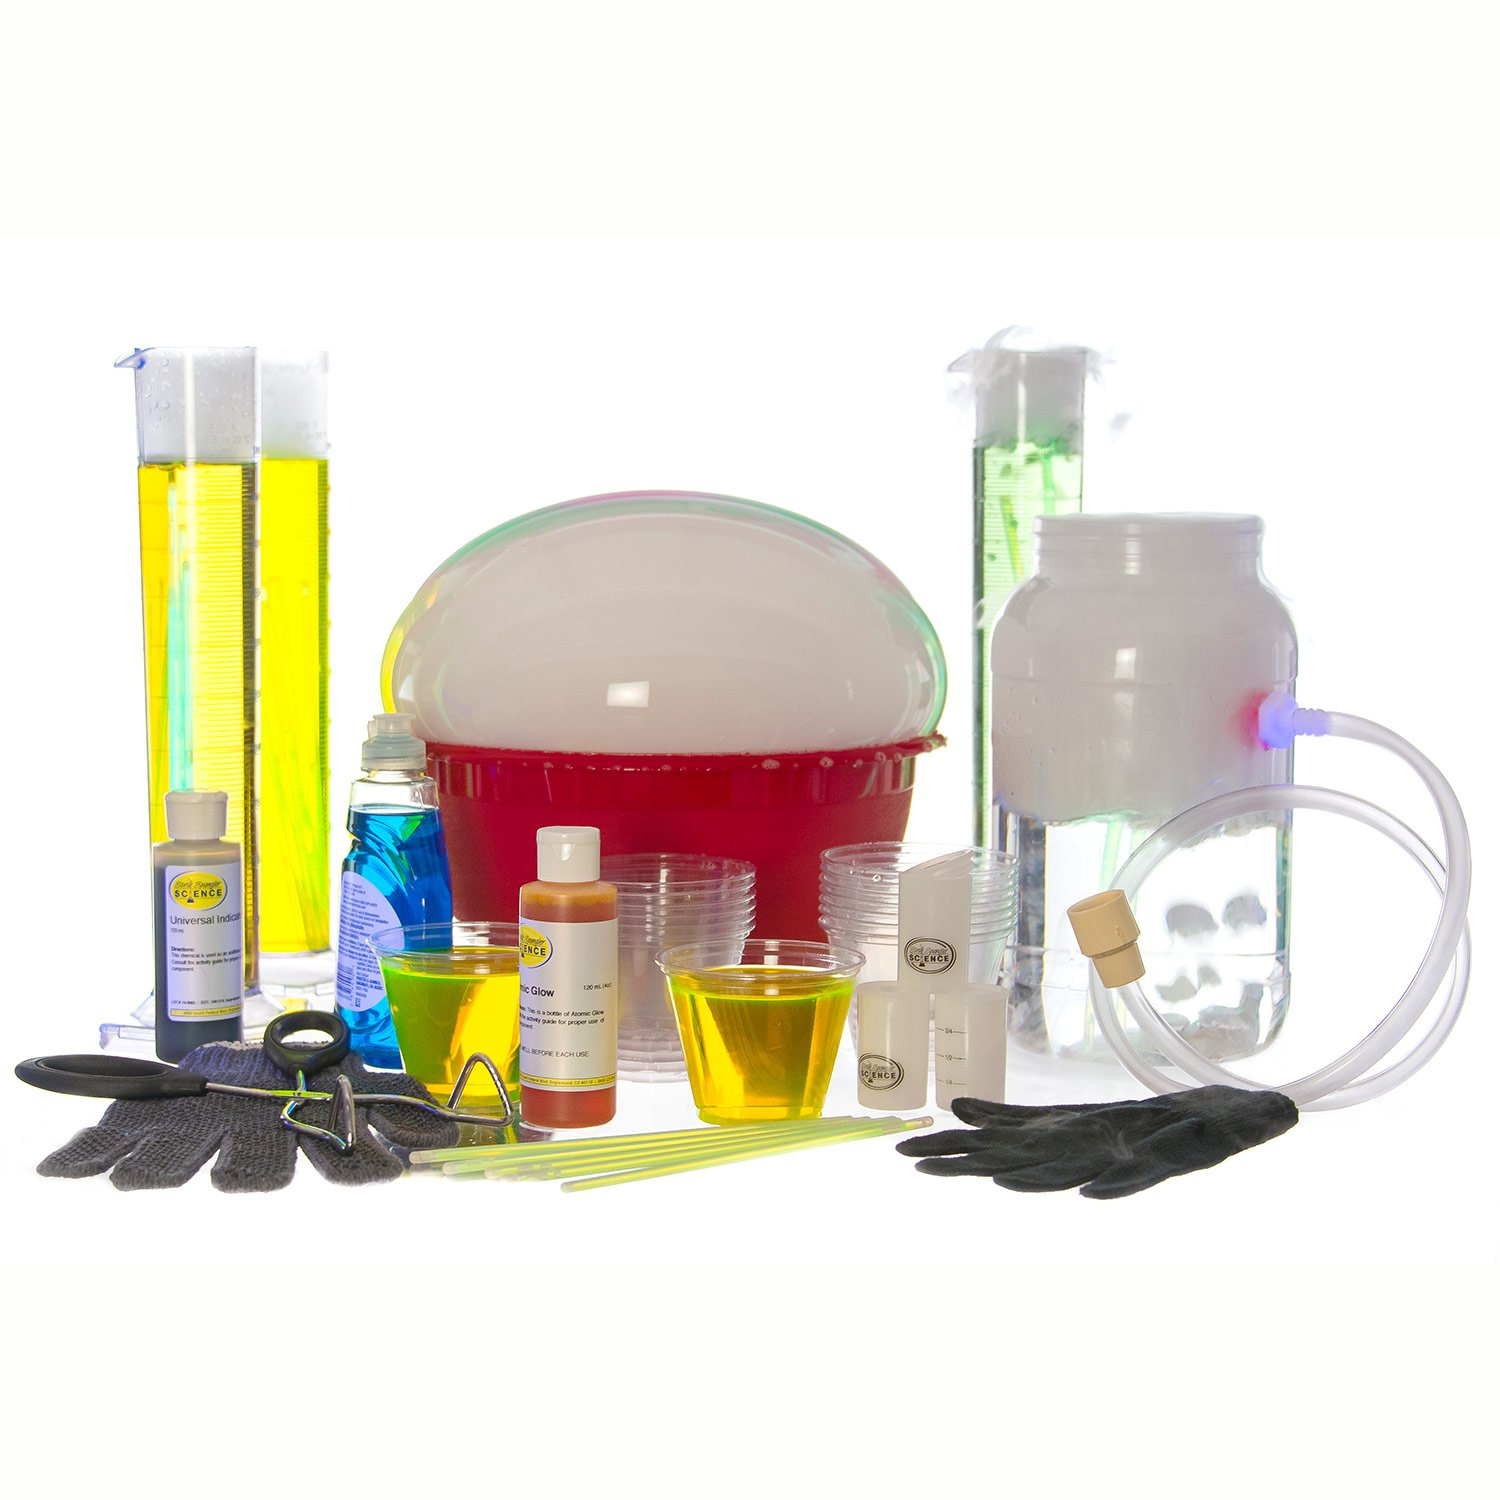 Steve Spangler's The Ultimate Dry Ice Science Kit - Science Experiment Kit for Kids and Classroom